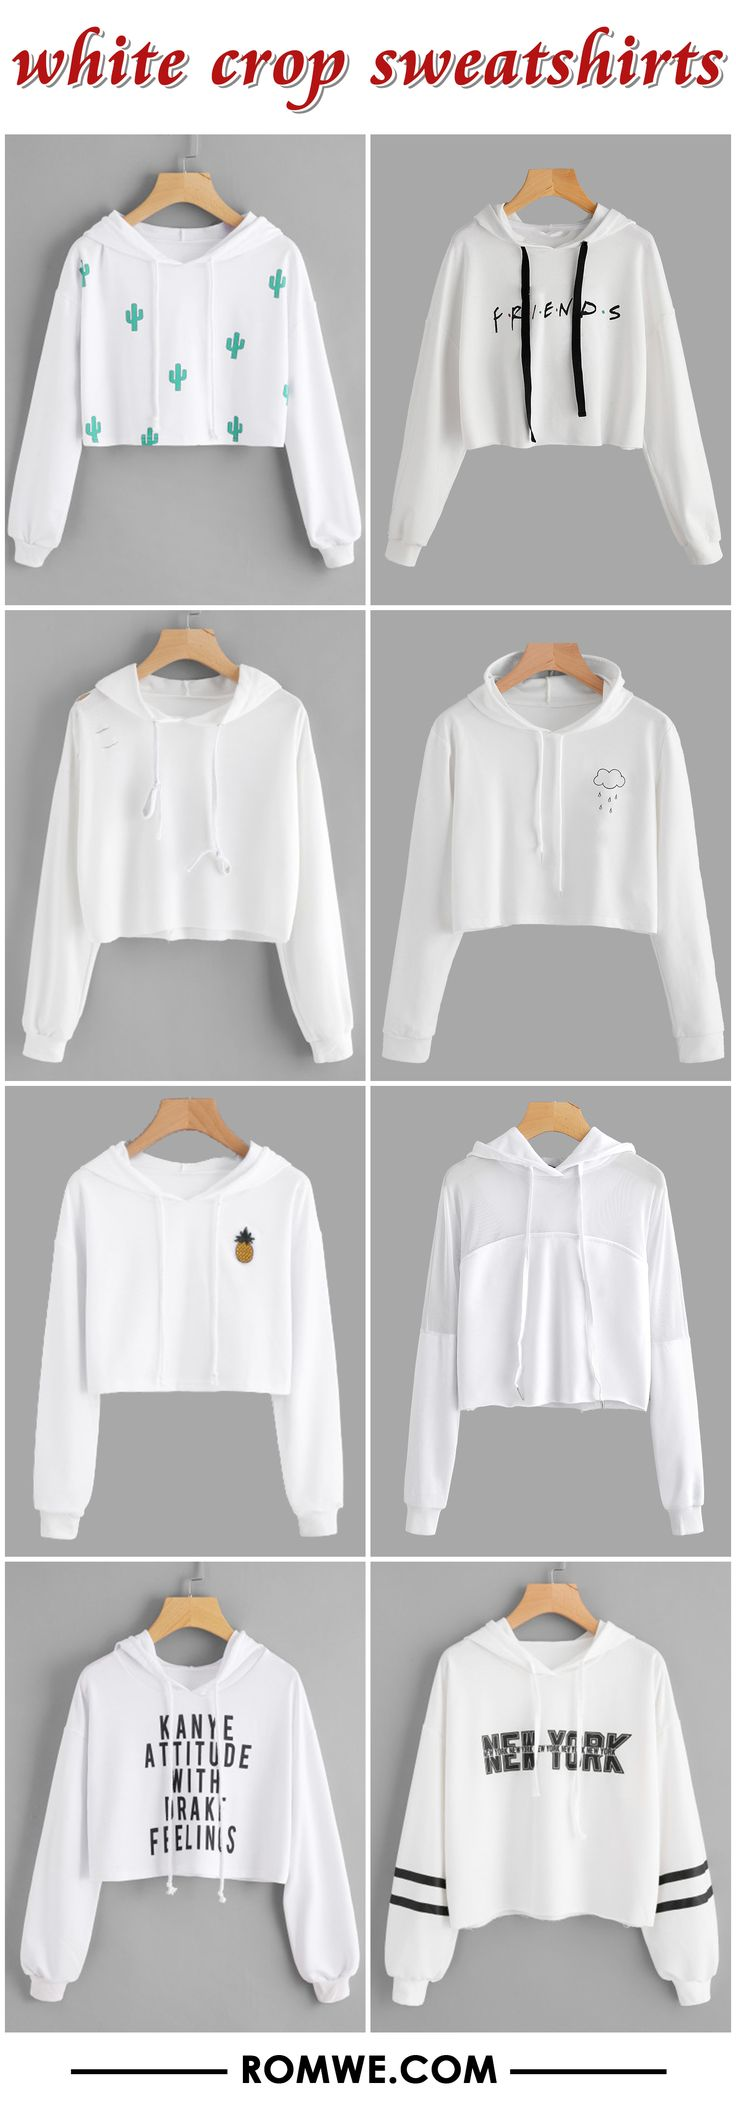 white crop sweatshirts 2017 - romwe.com